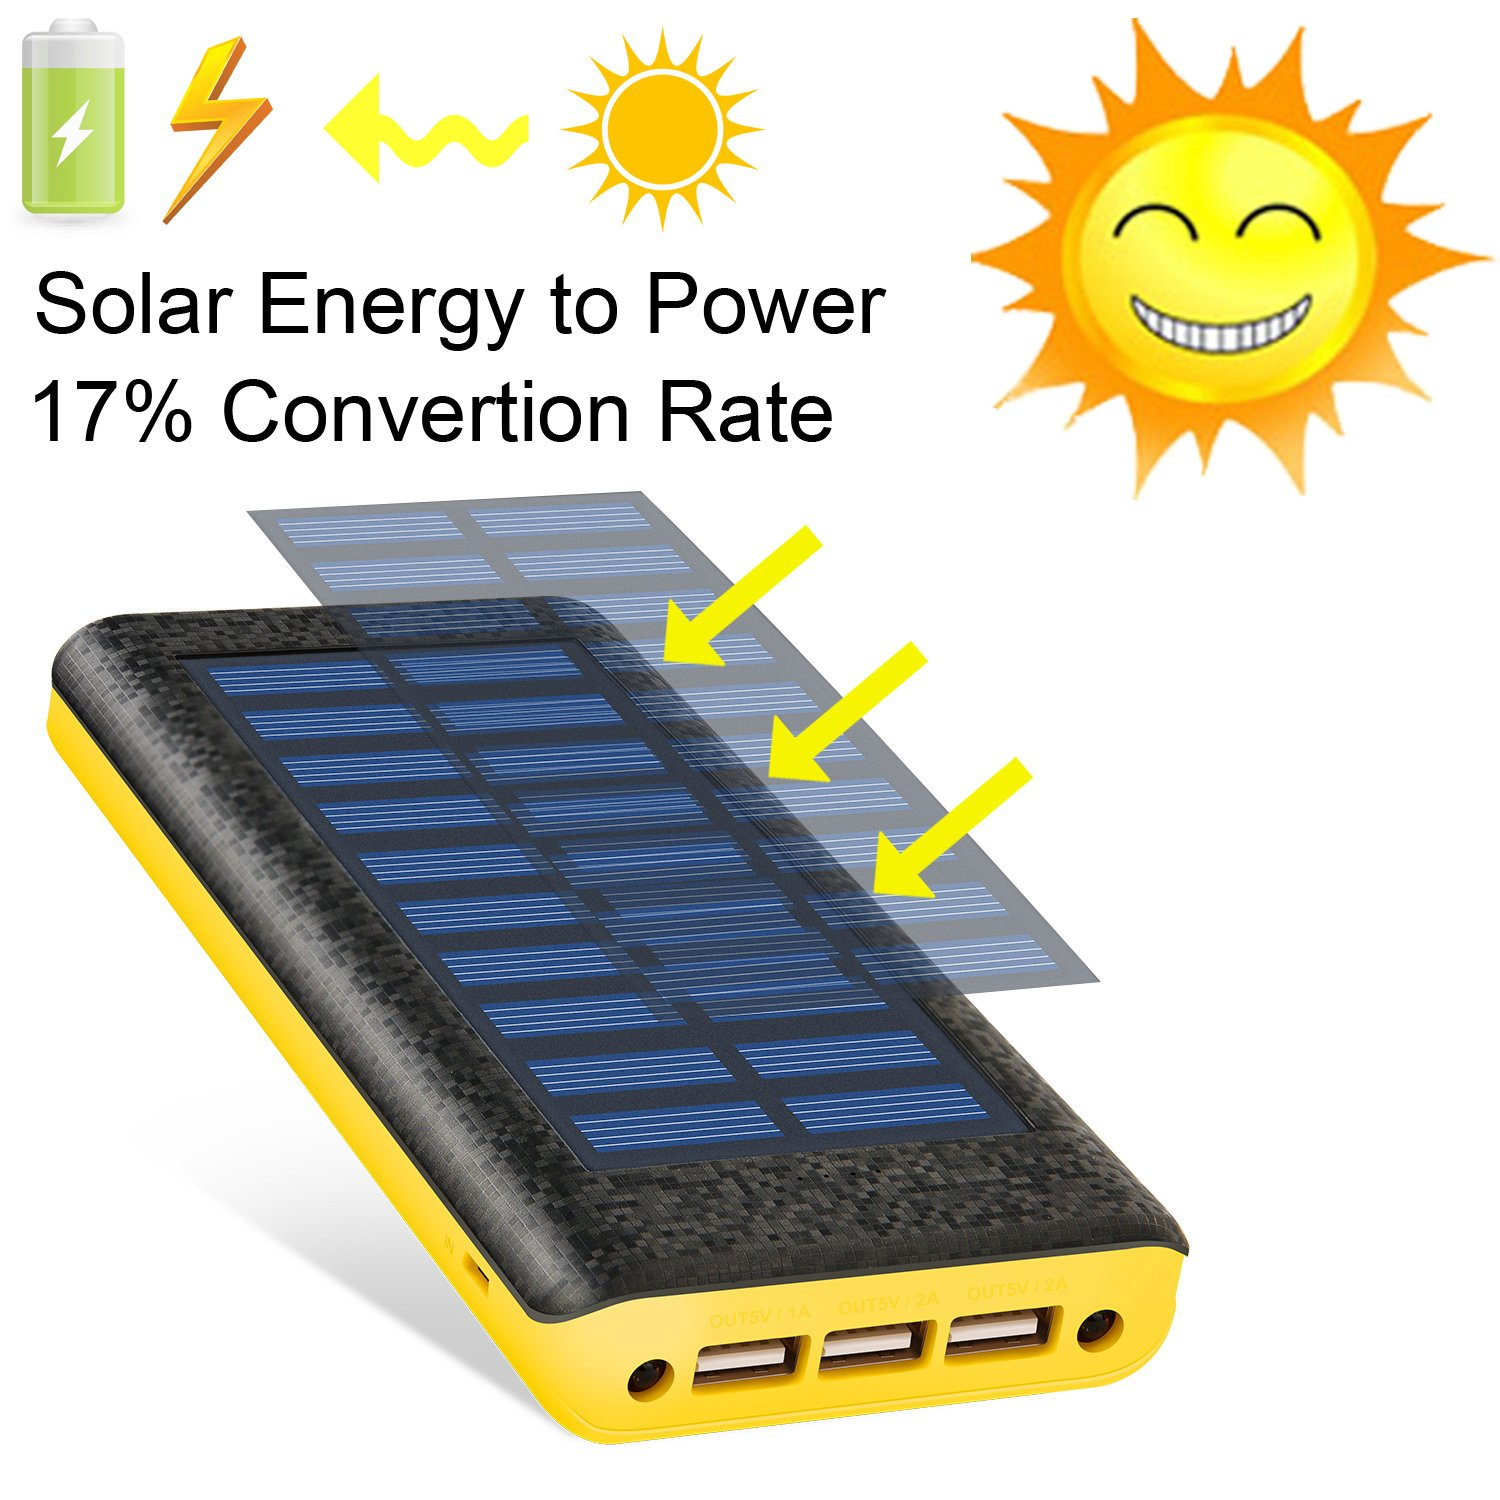 Solar charger Ruipu 24000mah Power Bank Portable charger With 3 USB Port External Battery Pack Phone Charger With 2 Flashlight For iPhone iPad Samsung HTC Cellphones Tablet And More